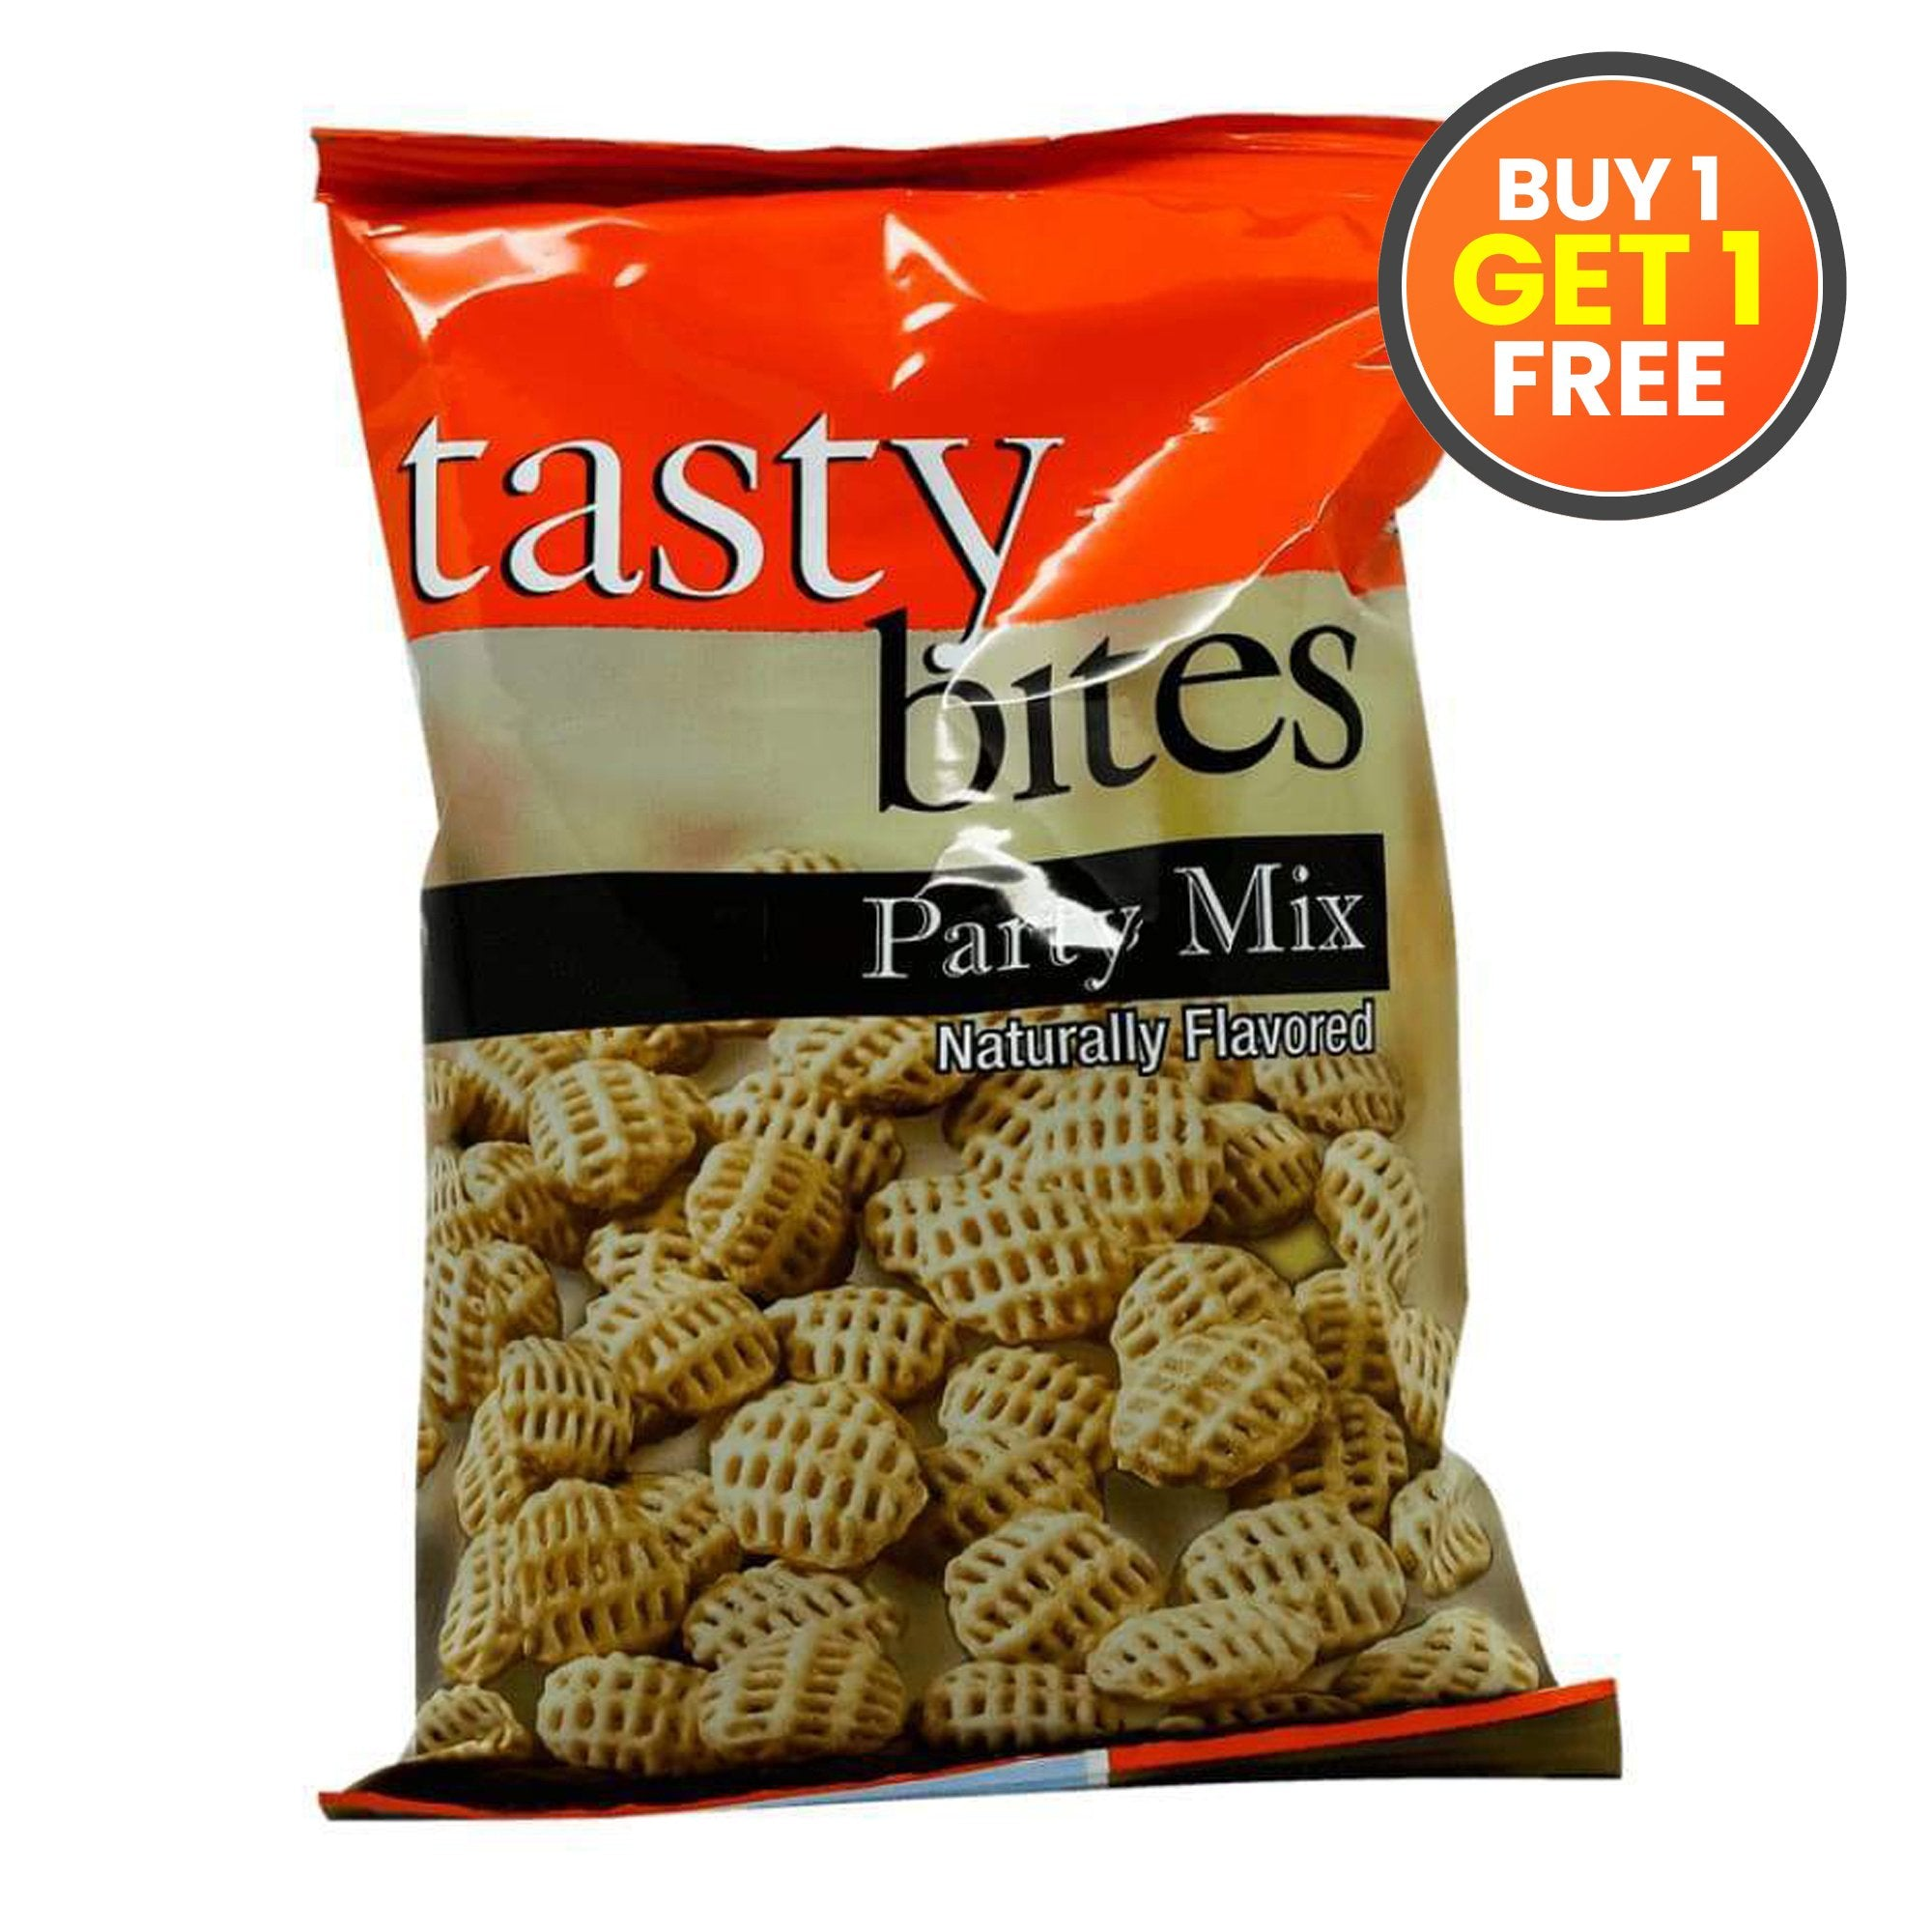 Tasty Bites Party Mix